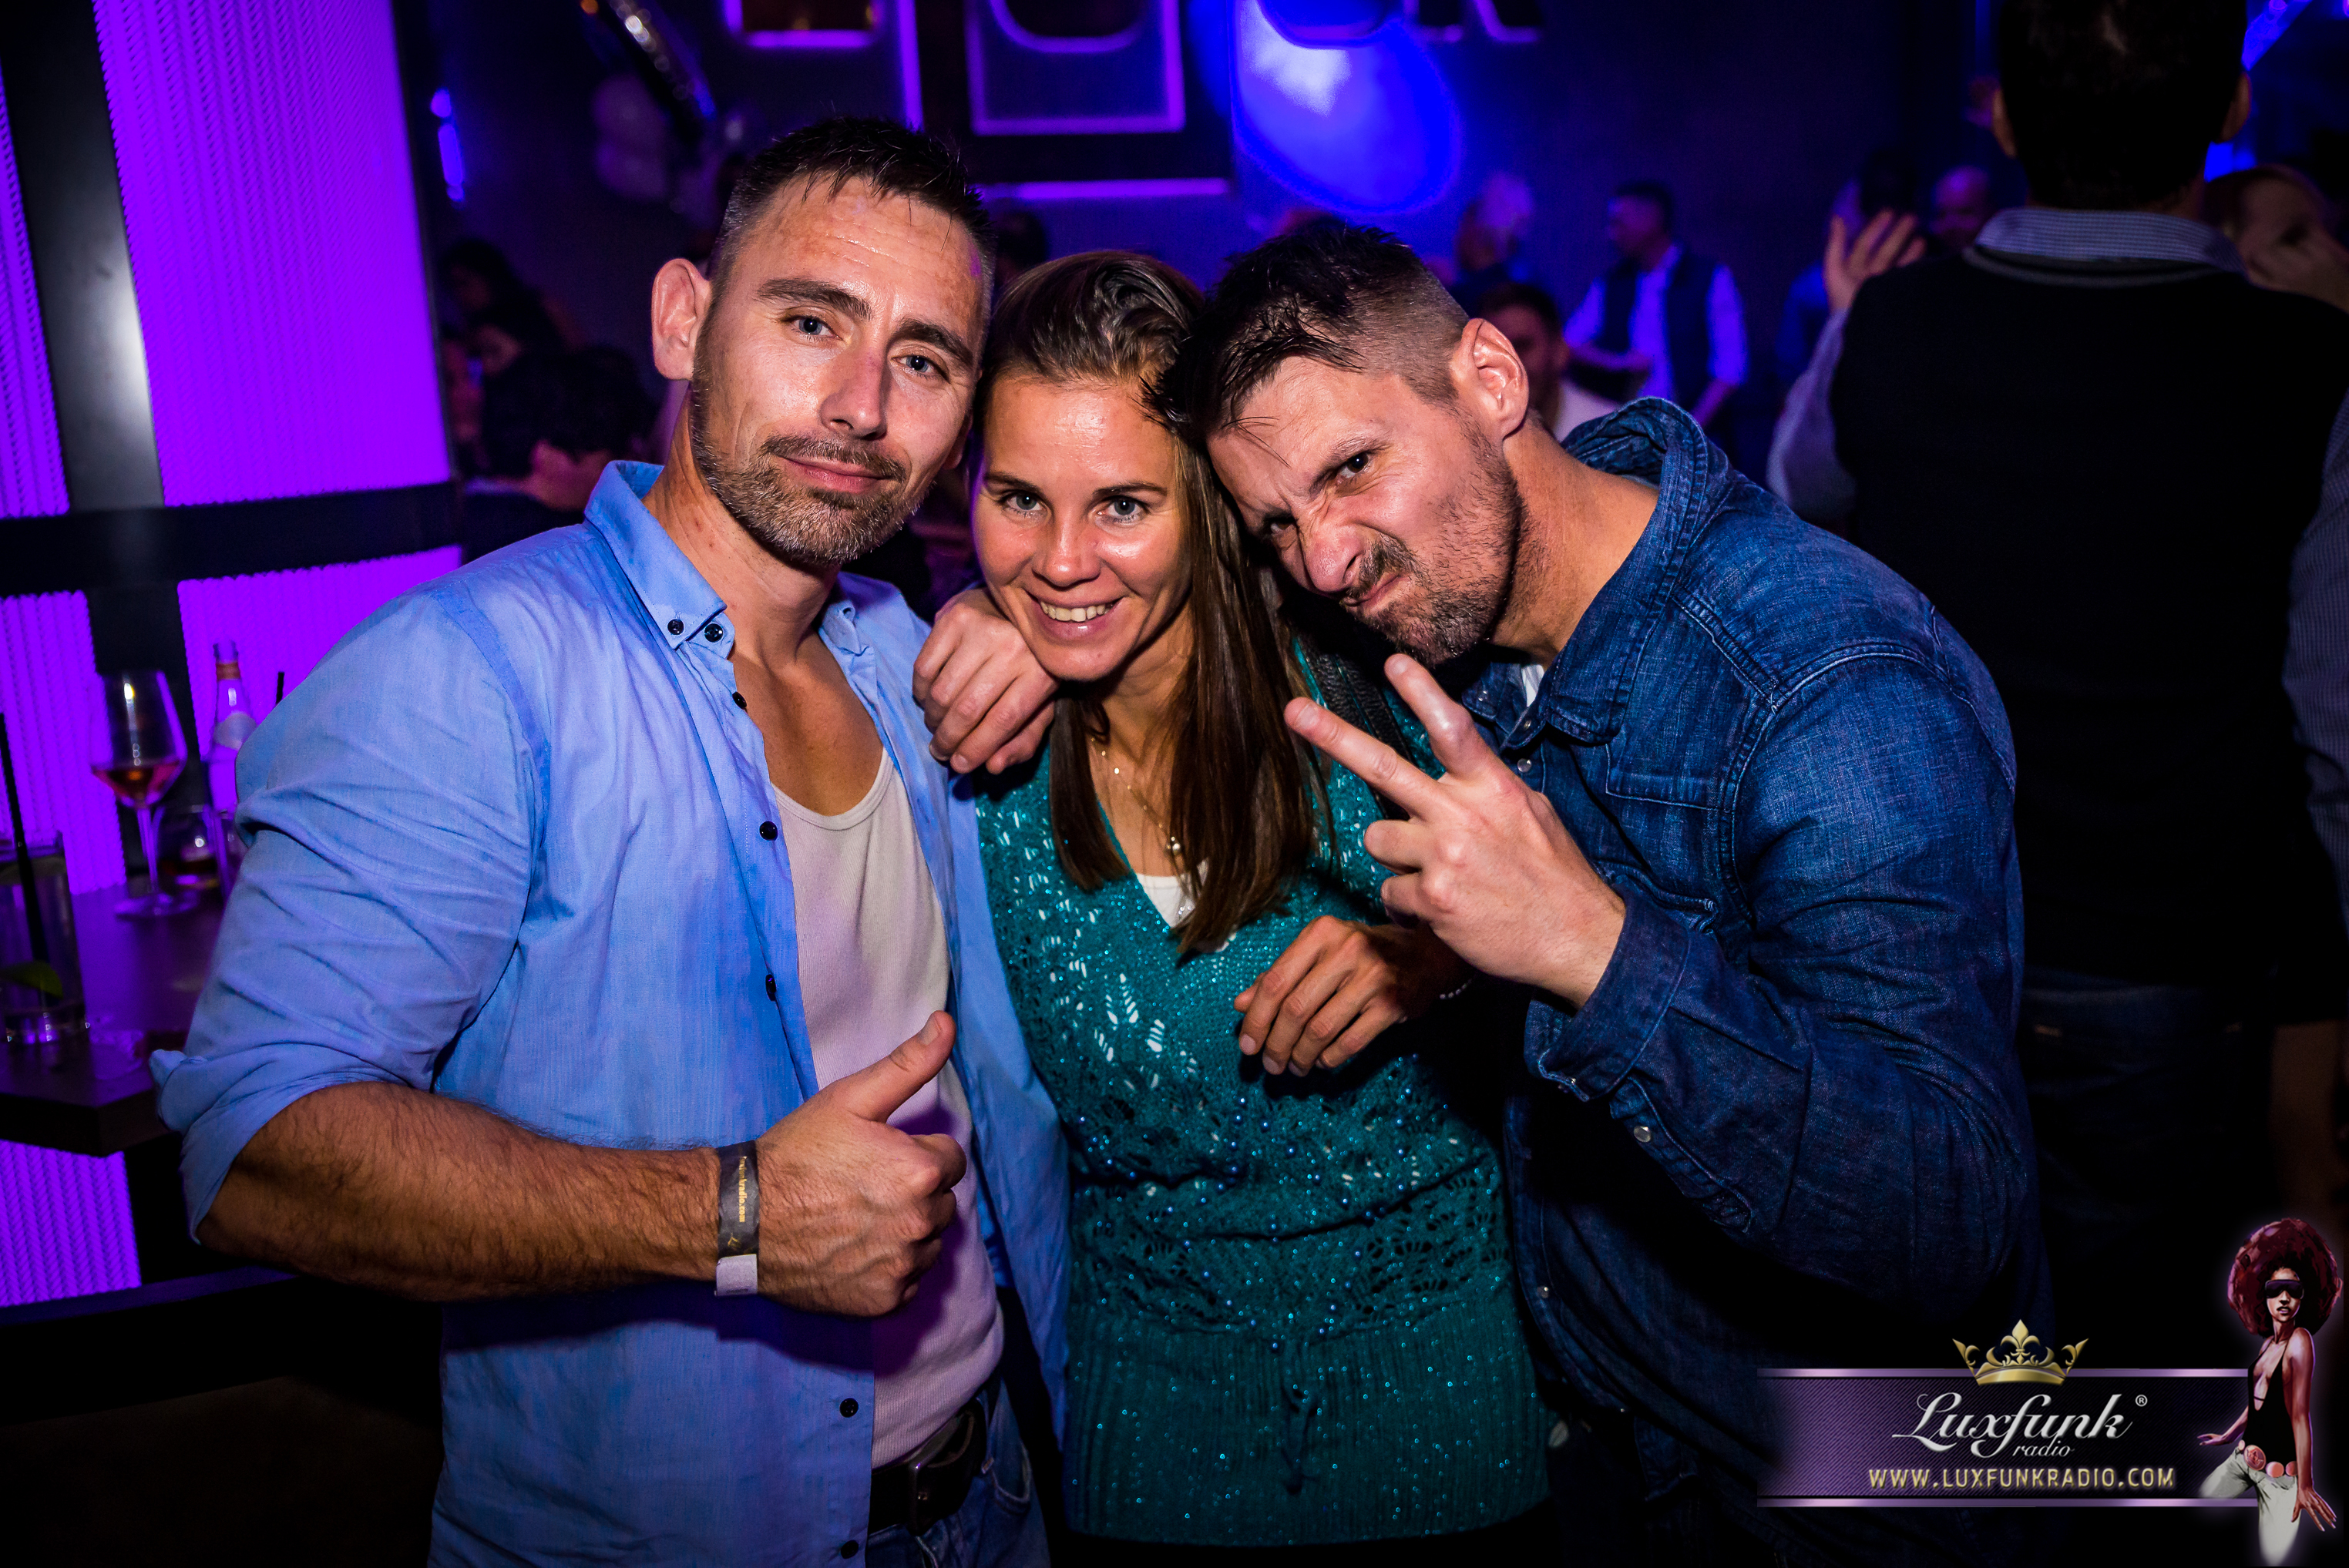 luxfunk-radio-funky-party-20191108-lock-budapest-1350